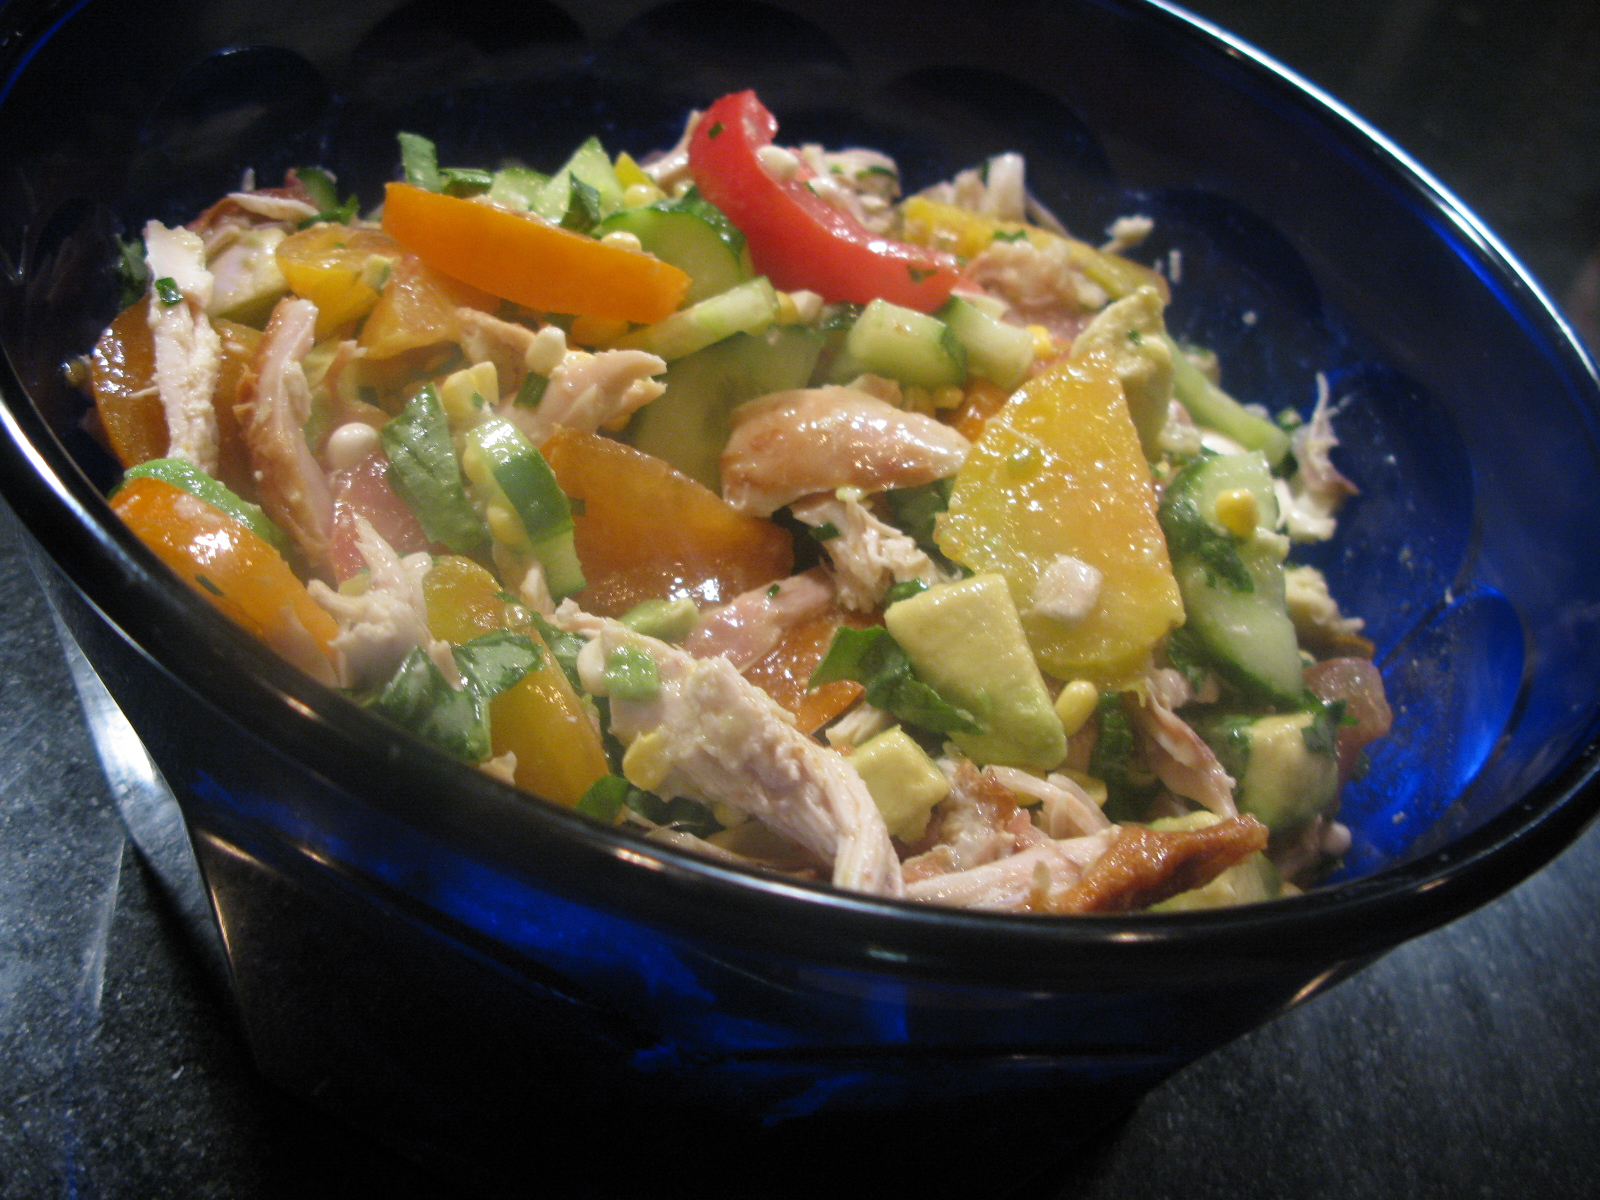 Honey-Citrus Chicken Salad with Avocado, Persimmon, and Heirloom Tomatoes